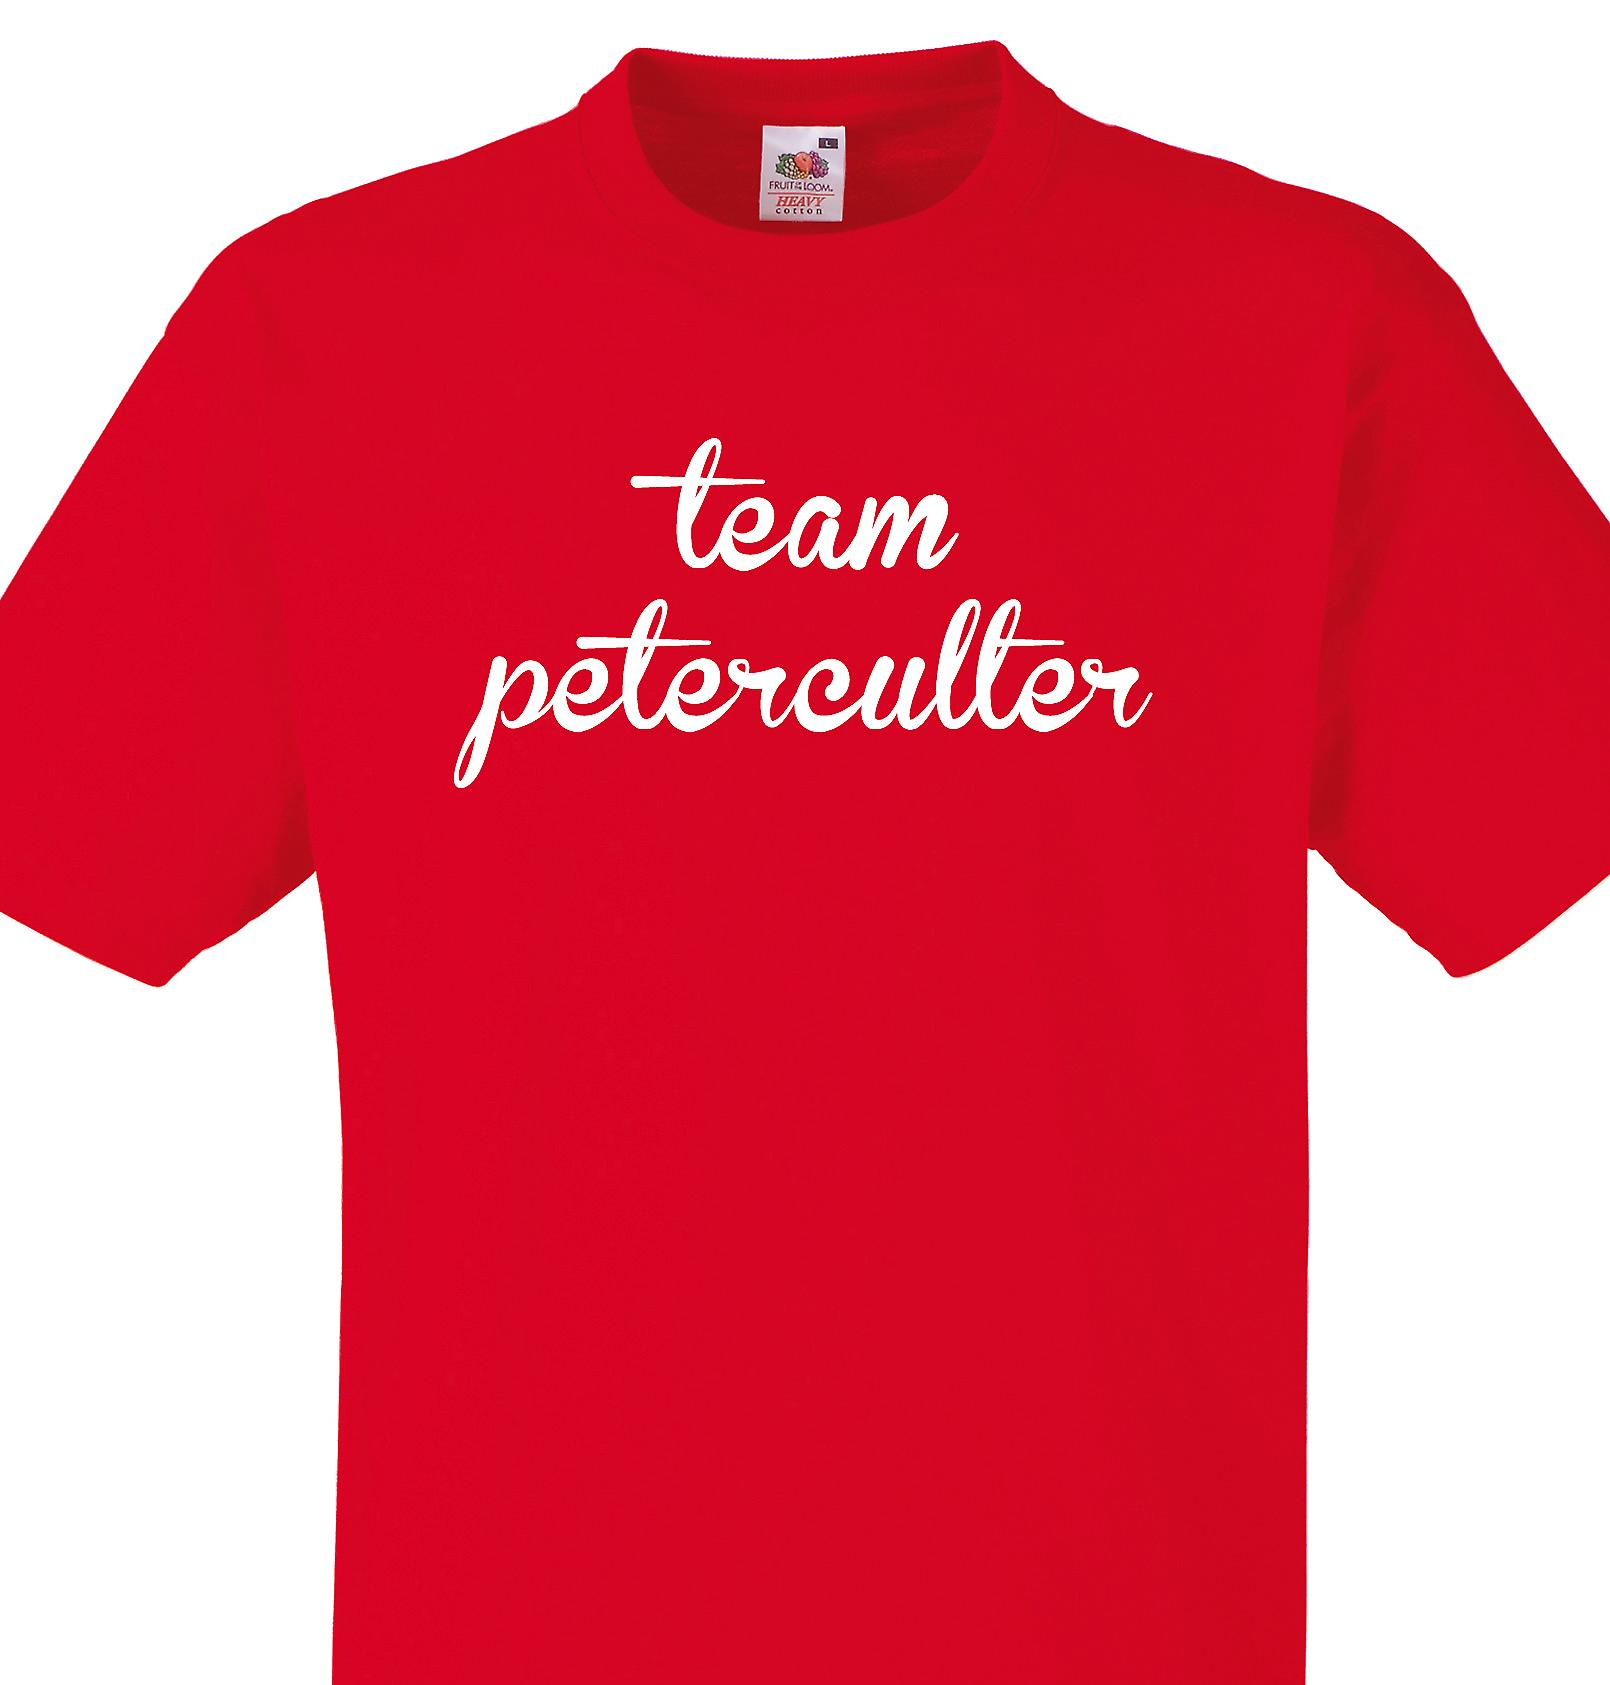 Team Peterculter Red T shirt